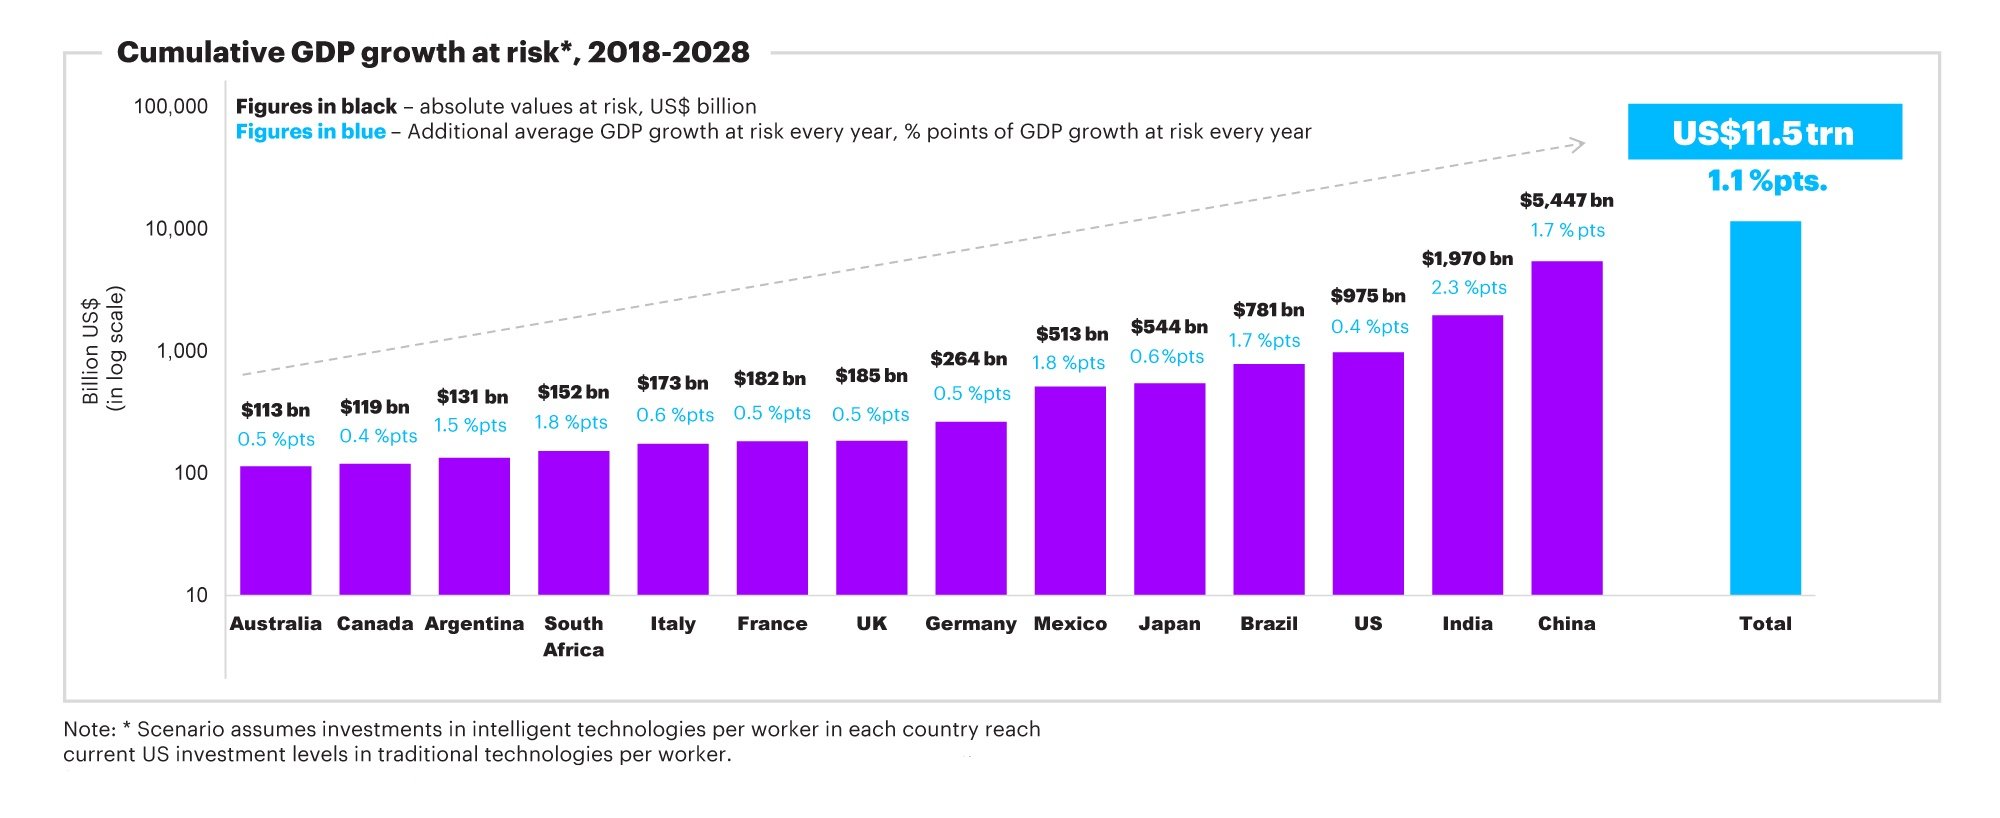 The growth premium in peril if economies are unable to meet the demand for skills